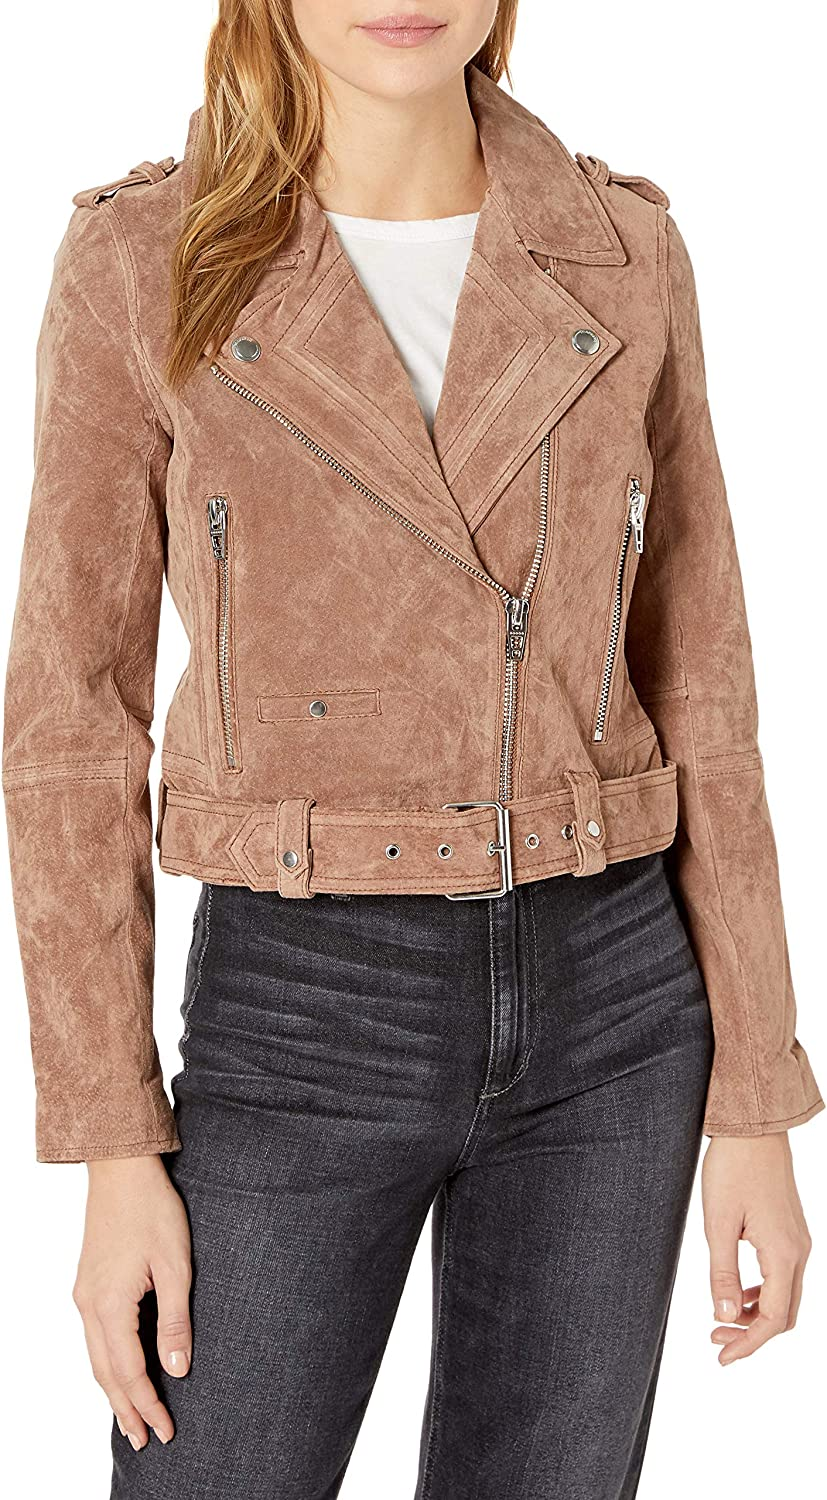 [BLANKNYC] womens Luxury Clothing Cropped Suede Leather Motorcycle Jacket